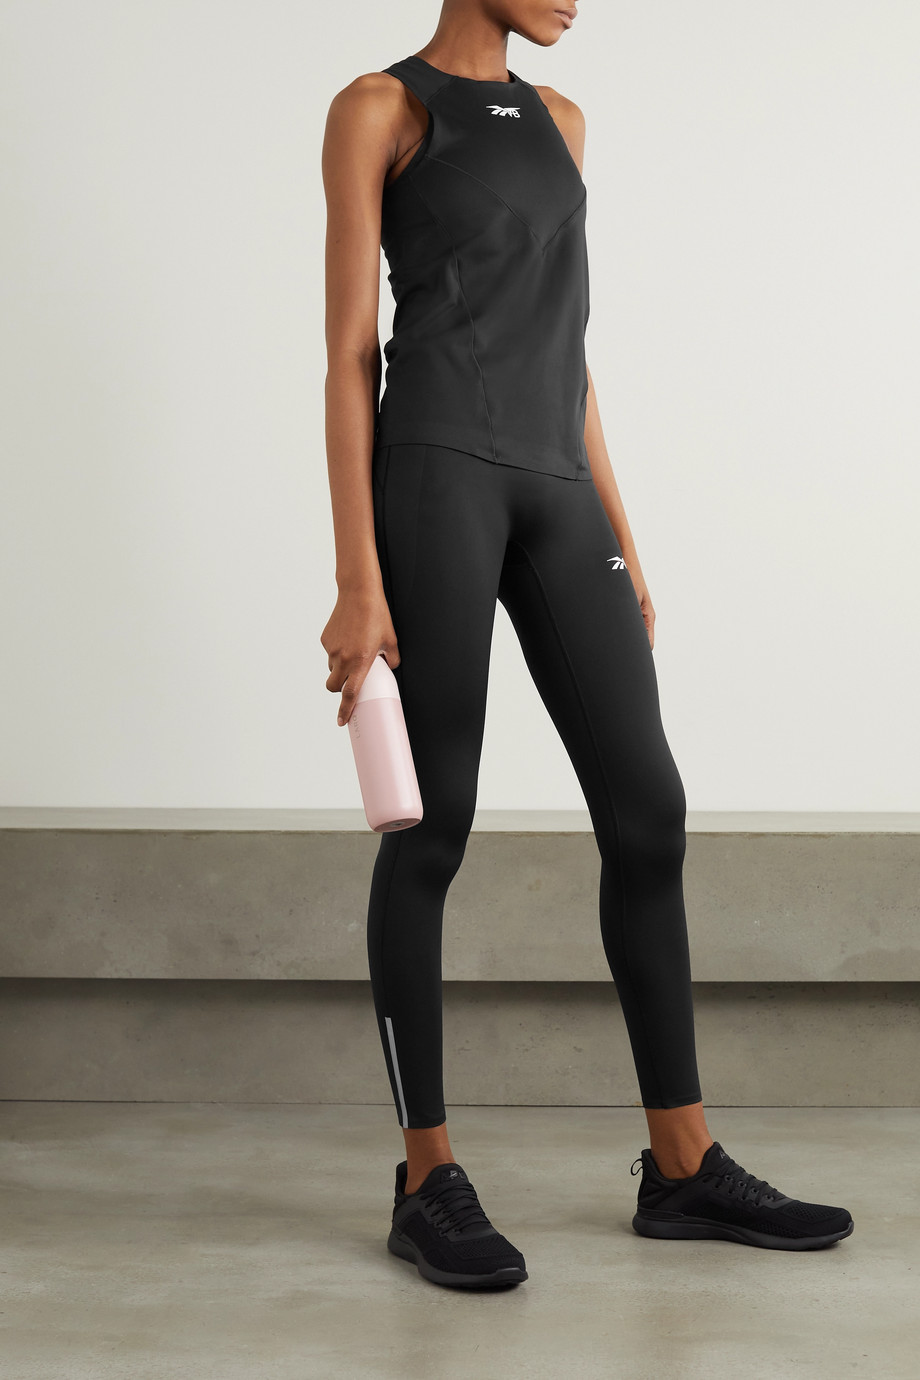 Reebok X Victoria Beckham Performance printed stretch tank